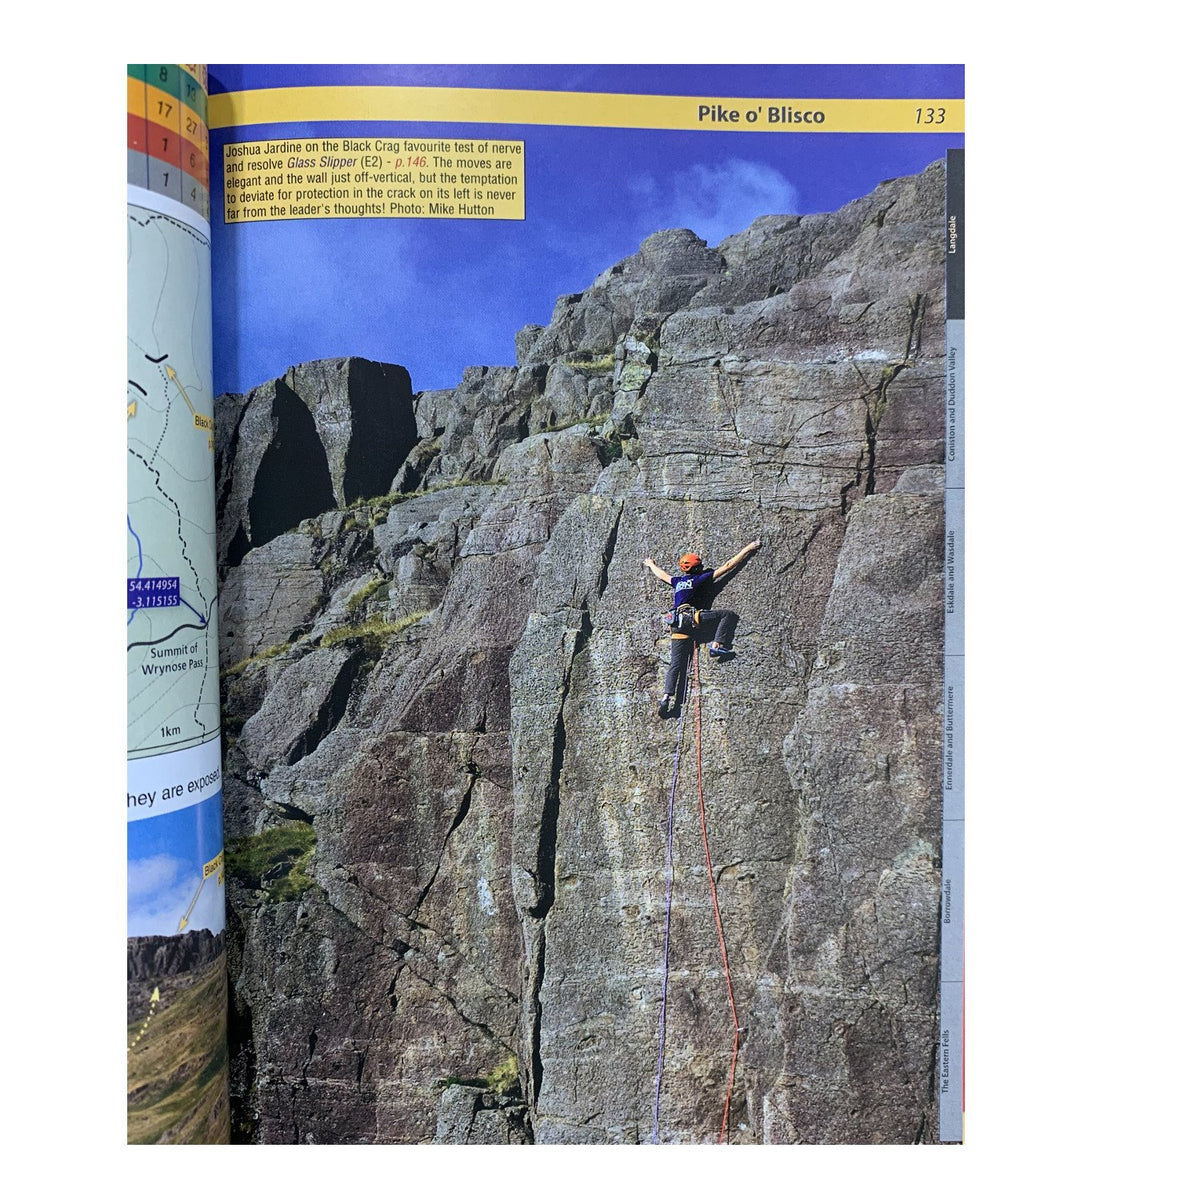 Lake District Climbs Inside page showing Joshua Jardine, climber on route